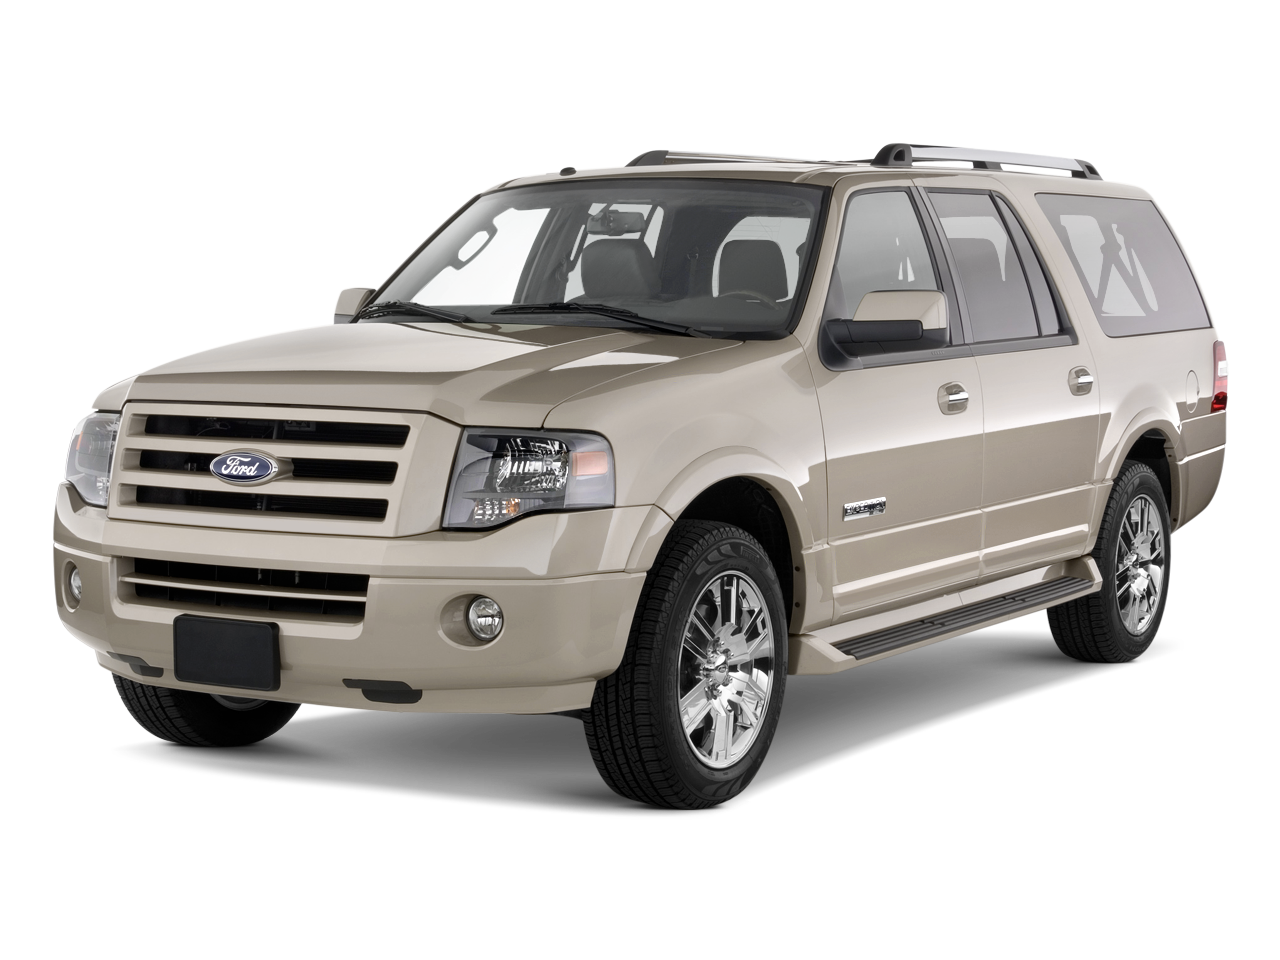 2009 ford expedition exp limited el 4x4 ford fullsize suv review rh automobilemag com 2009 ford expedition owners manual 2009 ford expedition owners manual